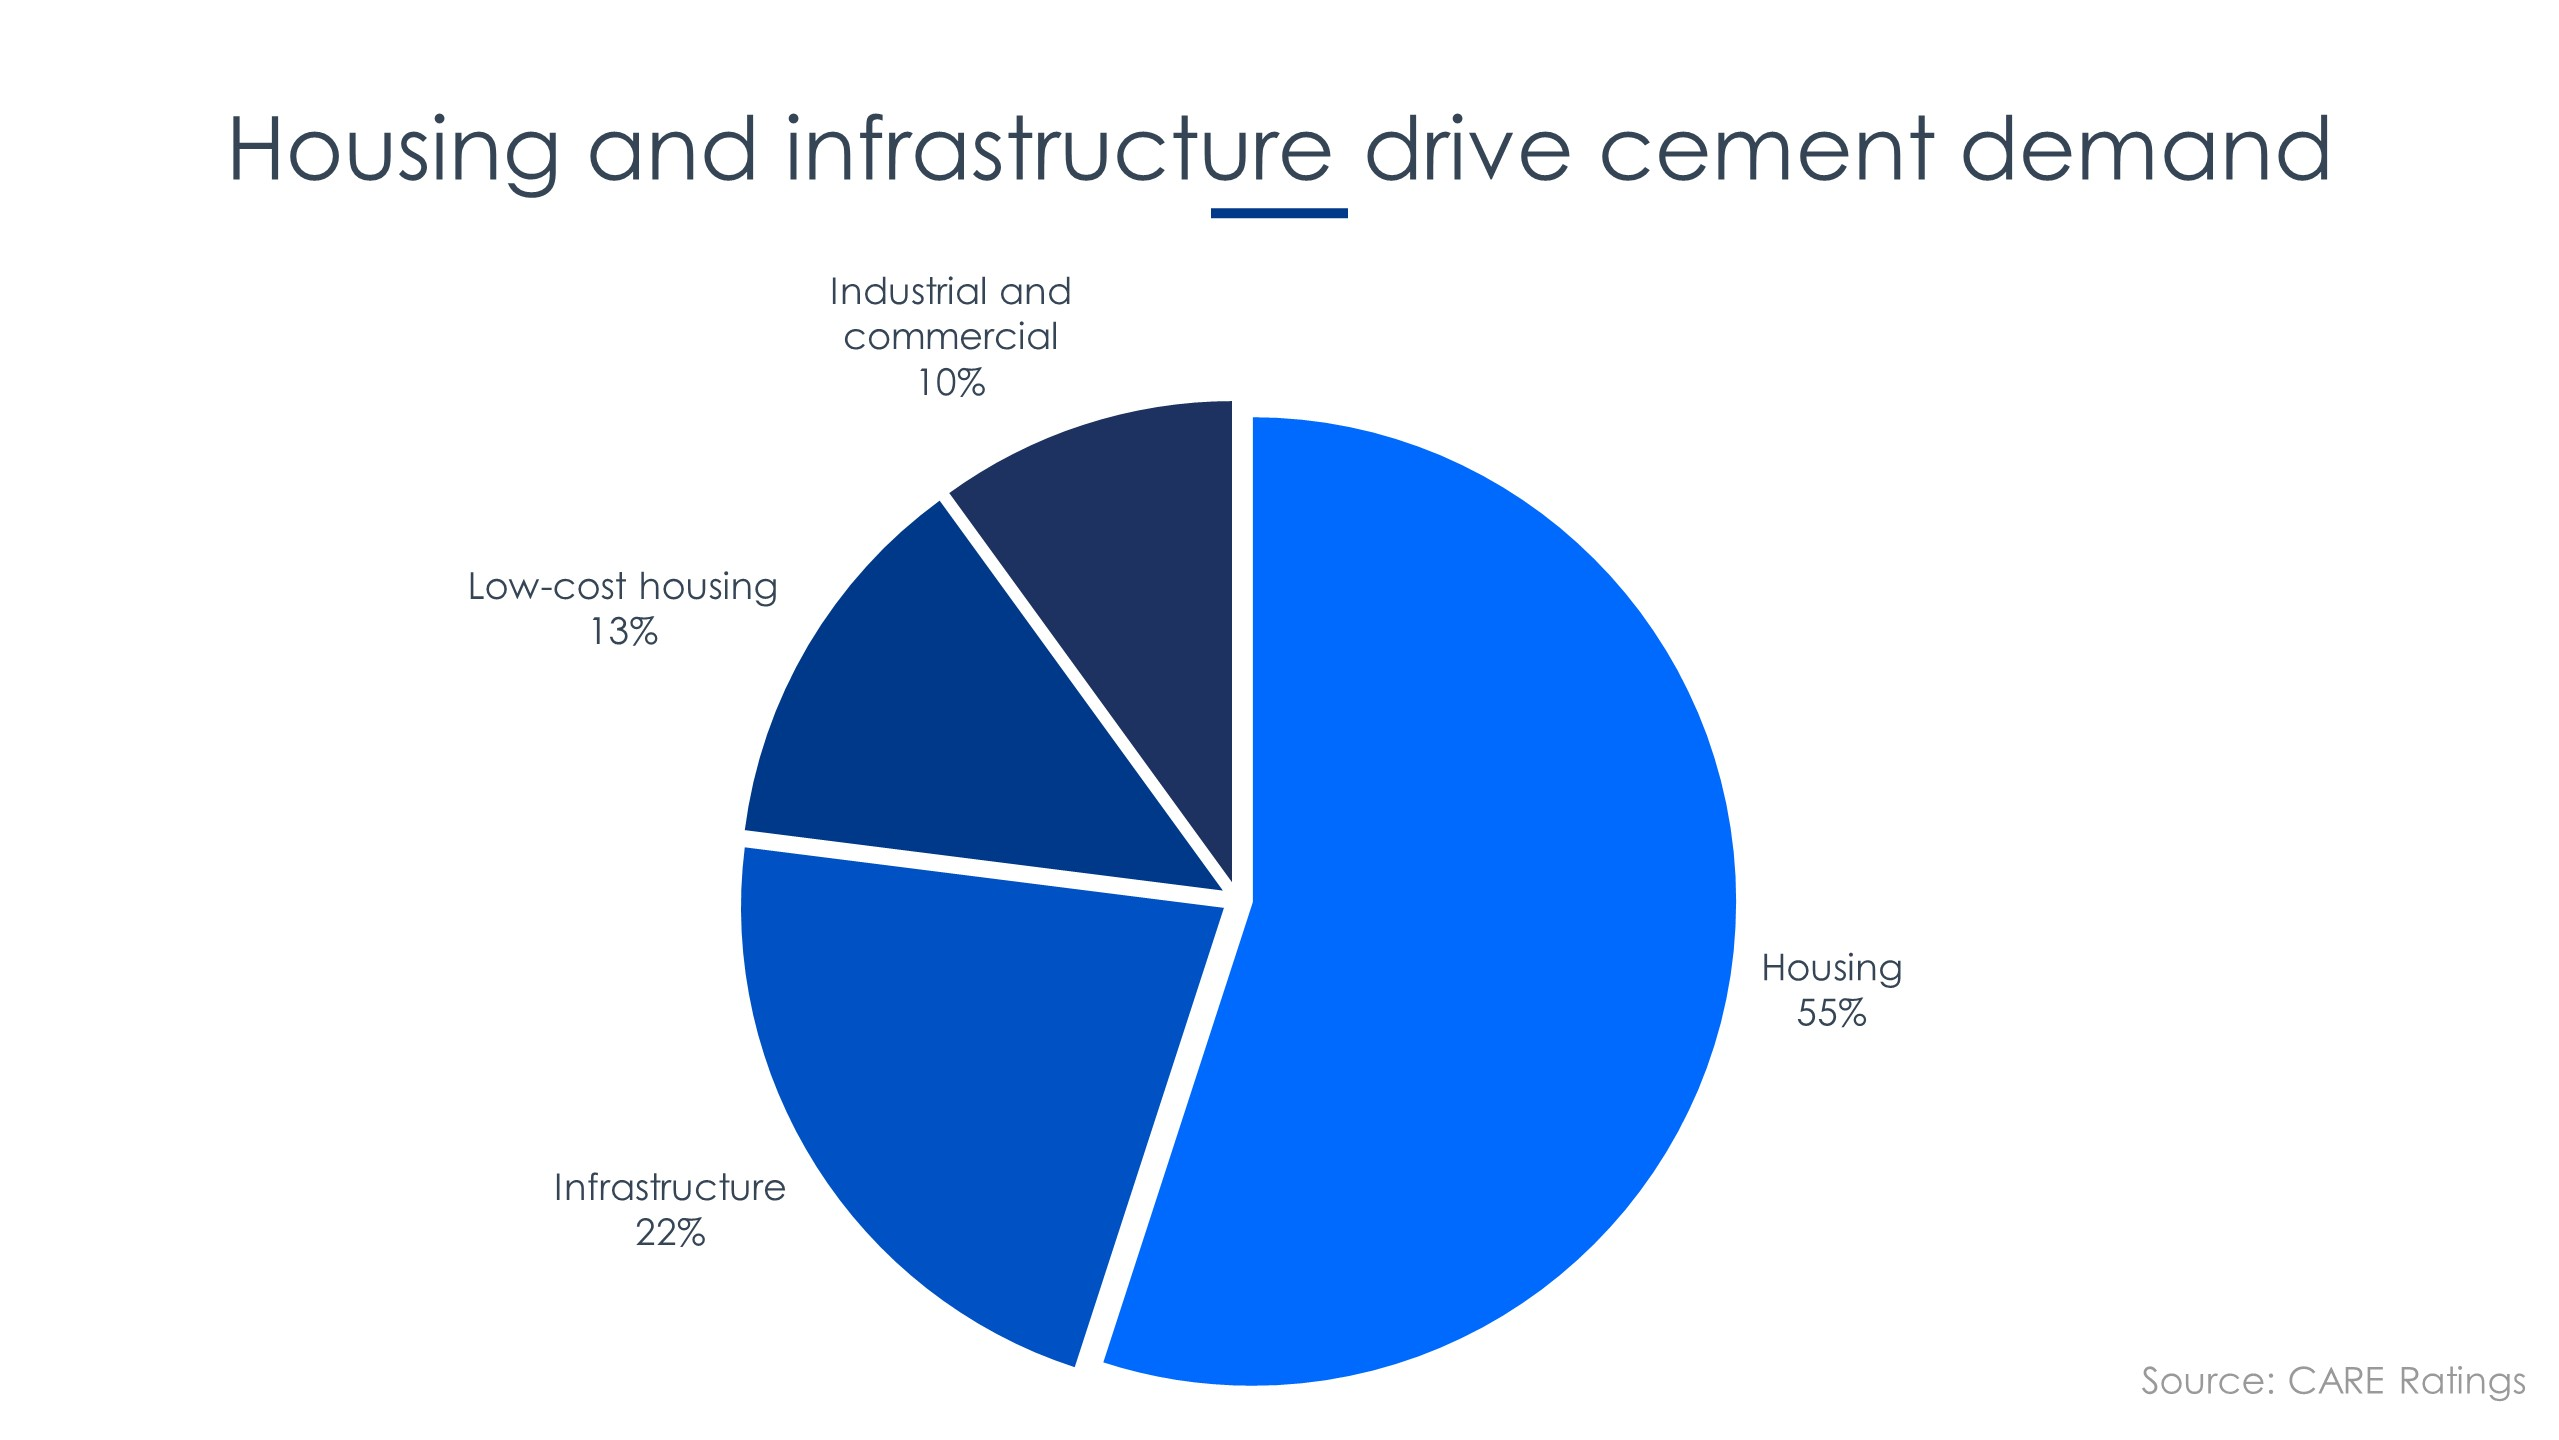 Cement Demand